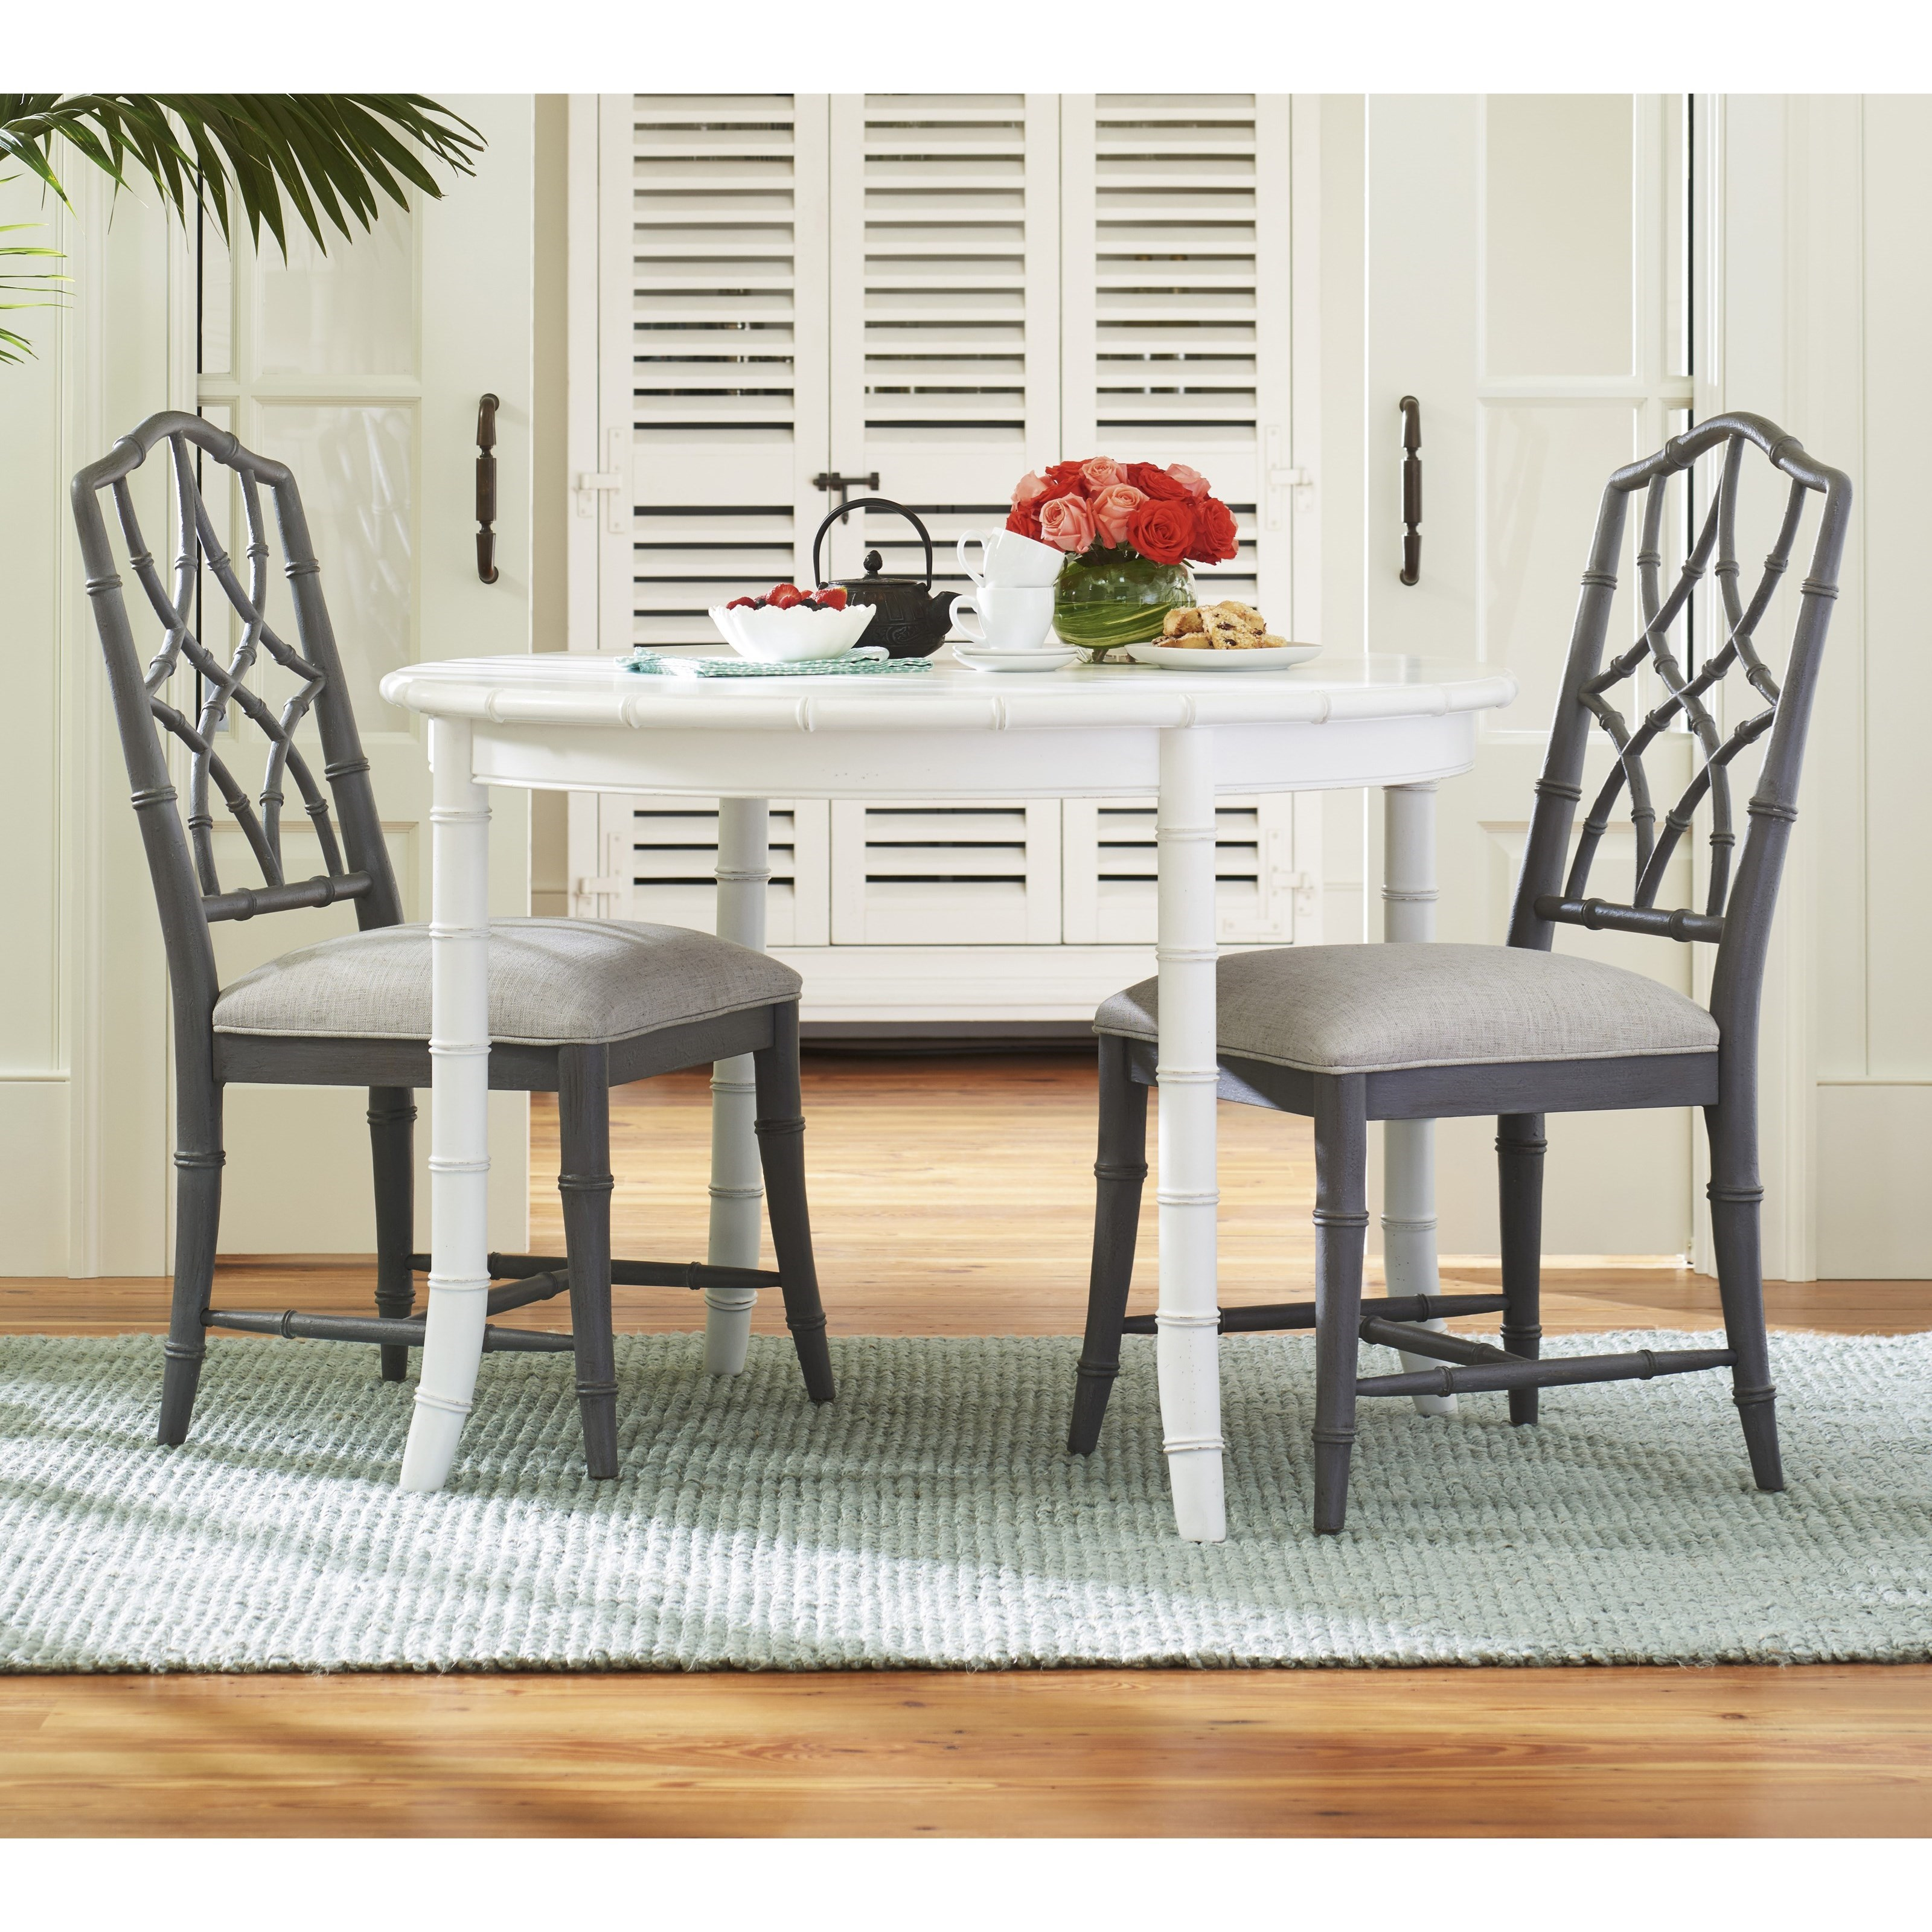 Bungalow Three Piece Cottage Dining Set With Bamboo Inspired Framing By Paula Deen Universal